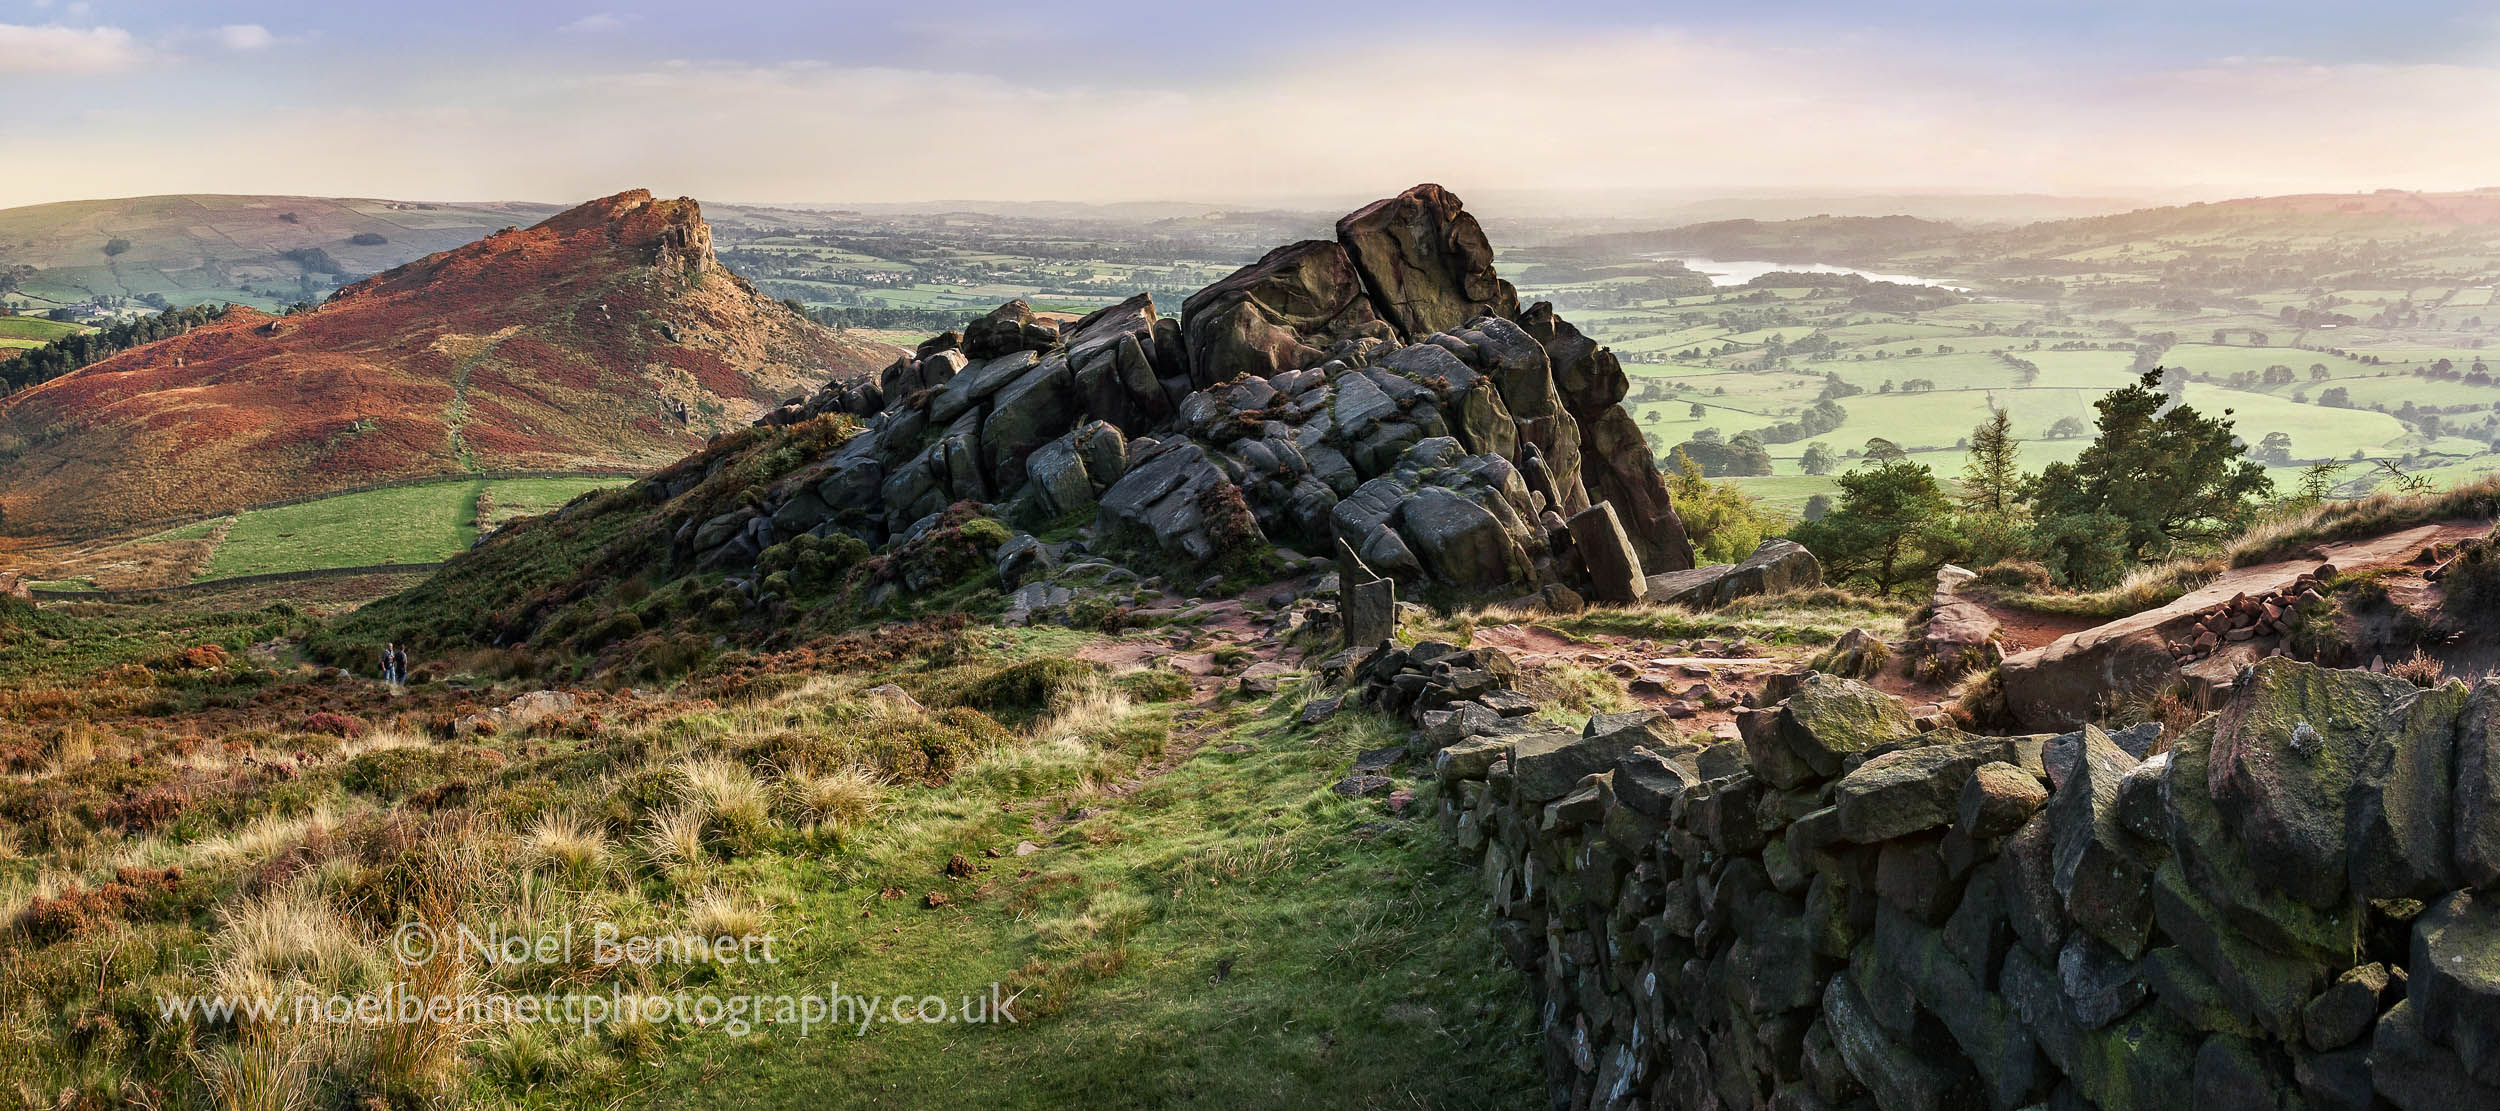 'Evening Light Over the Roaches'